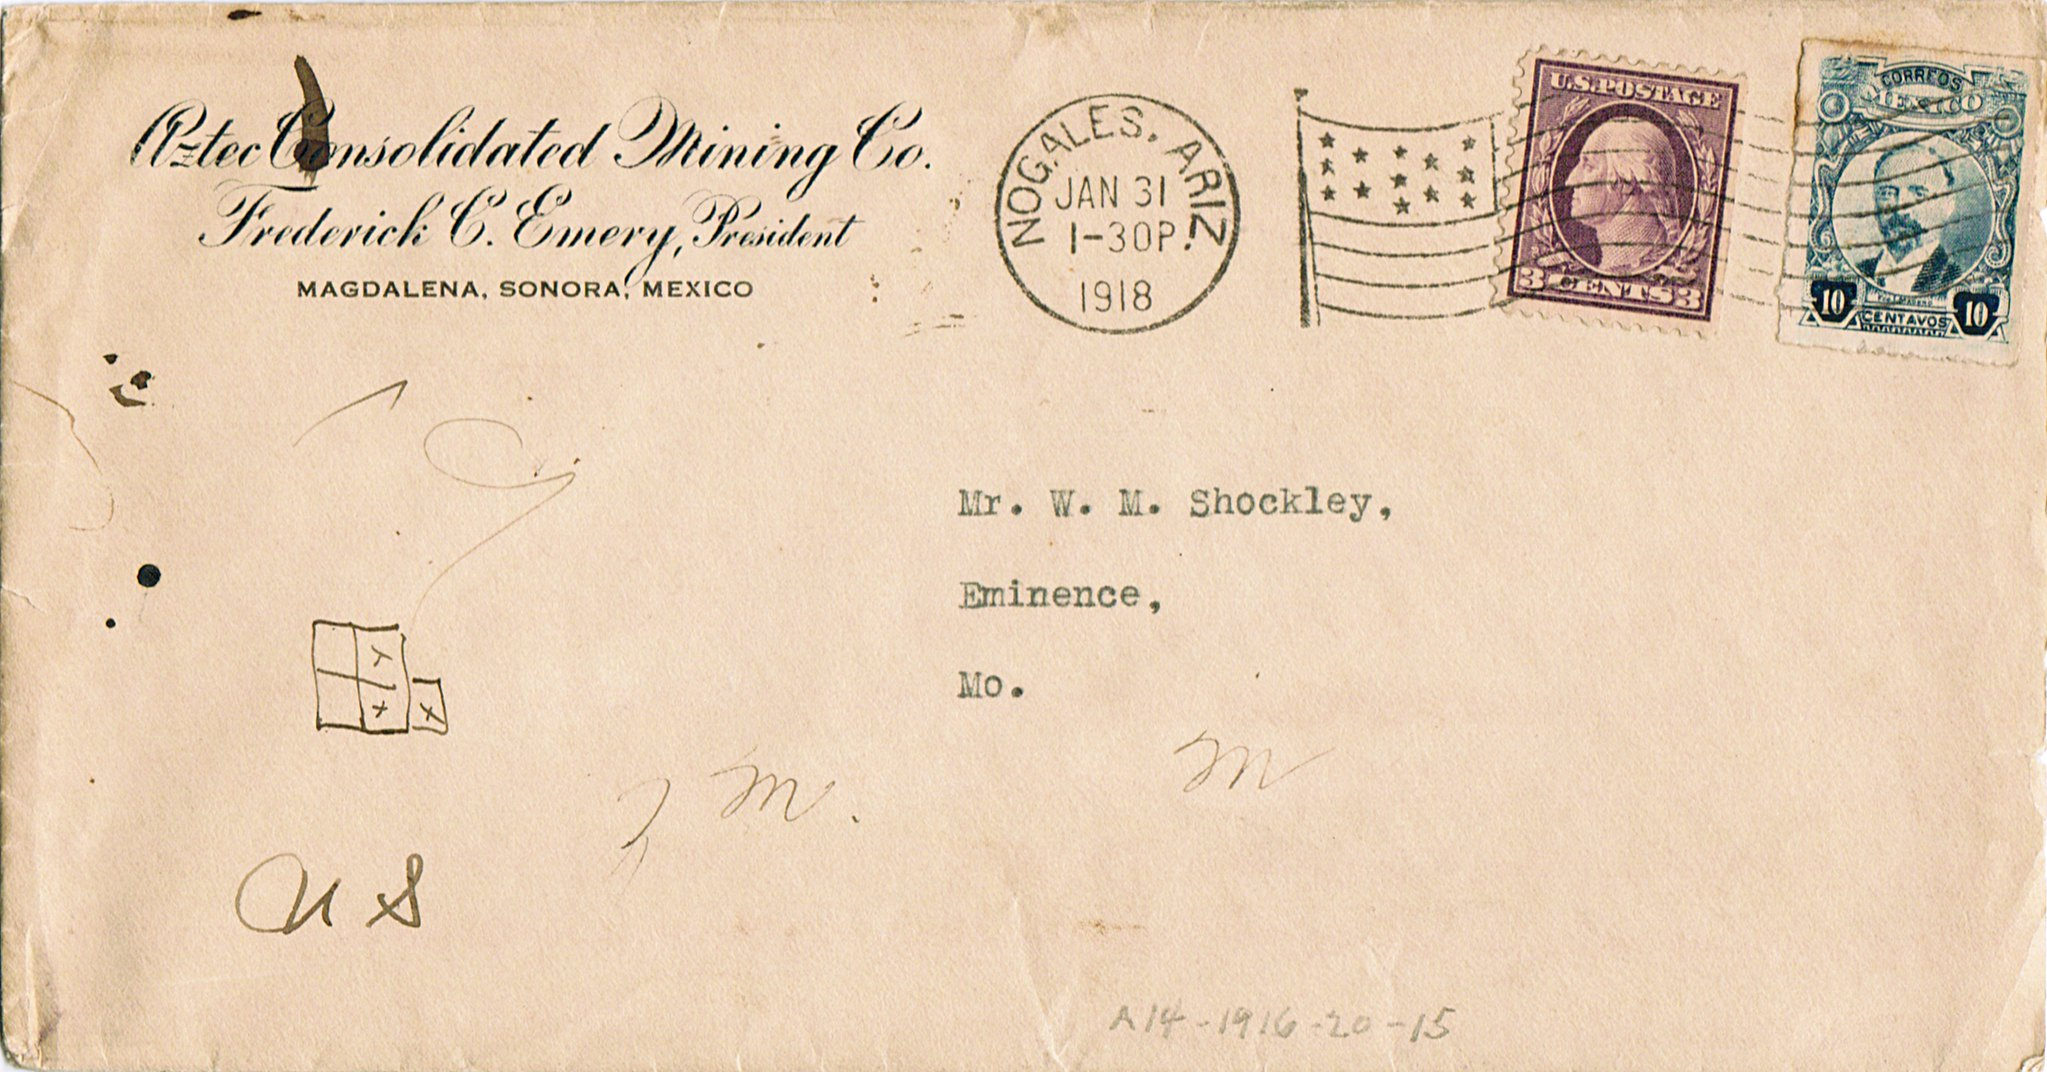 postal history item showing First World War rates in the U.S.